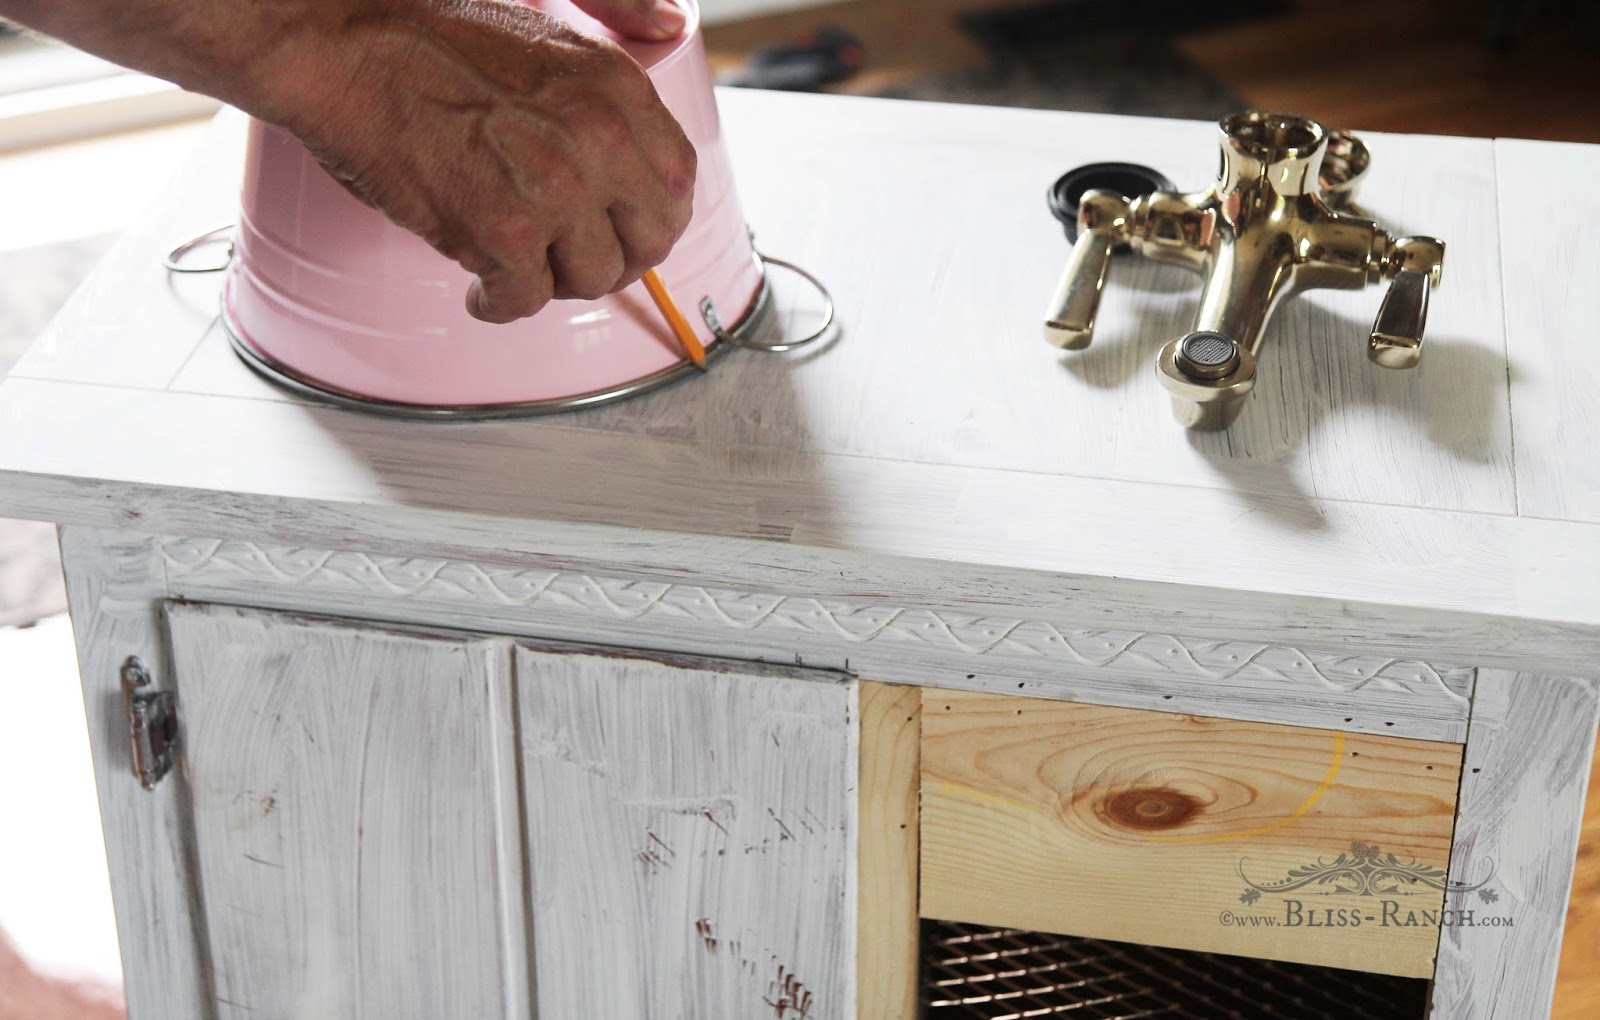 Upcycled Nightstand to Play Kitchen Bliss-Ranch.com #playkitchen